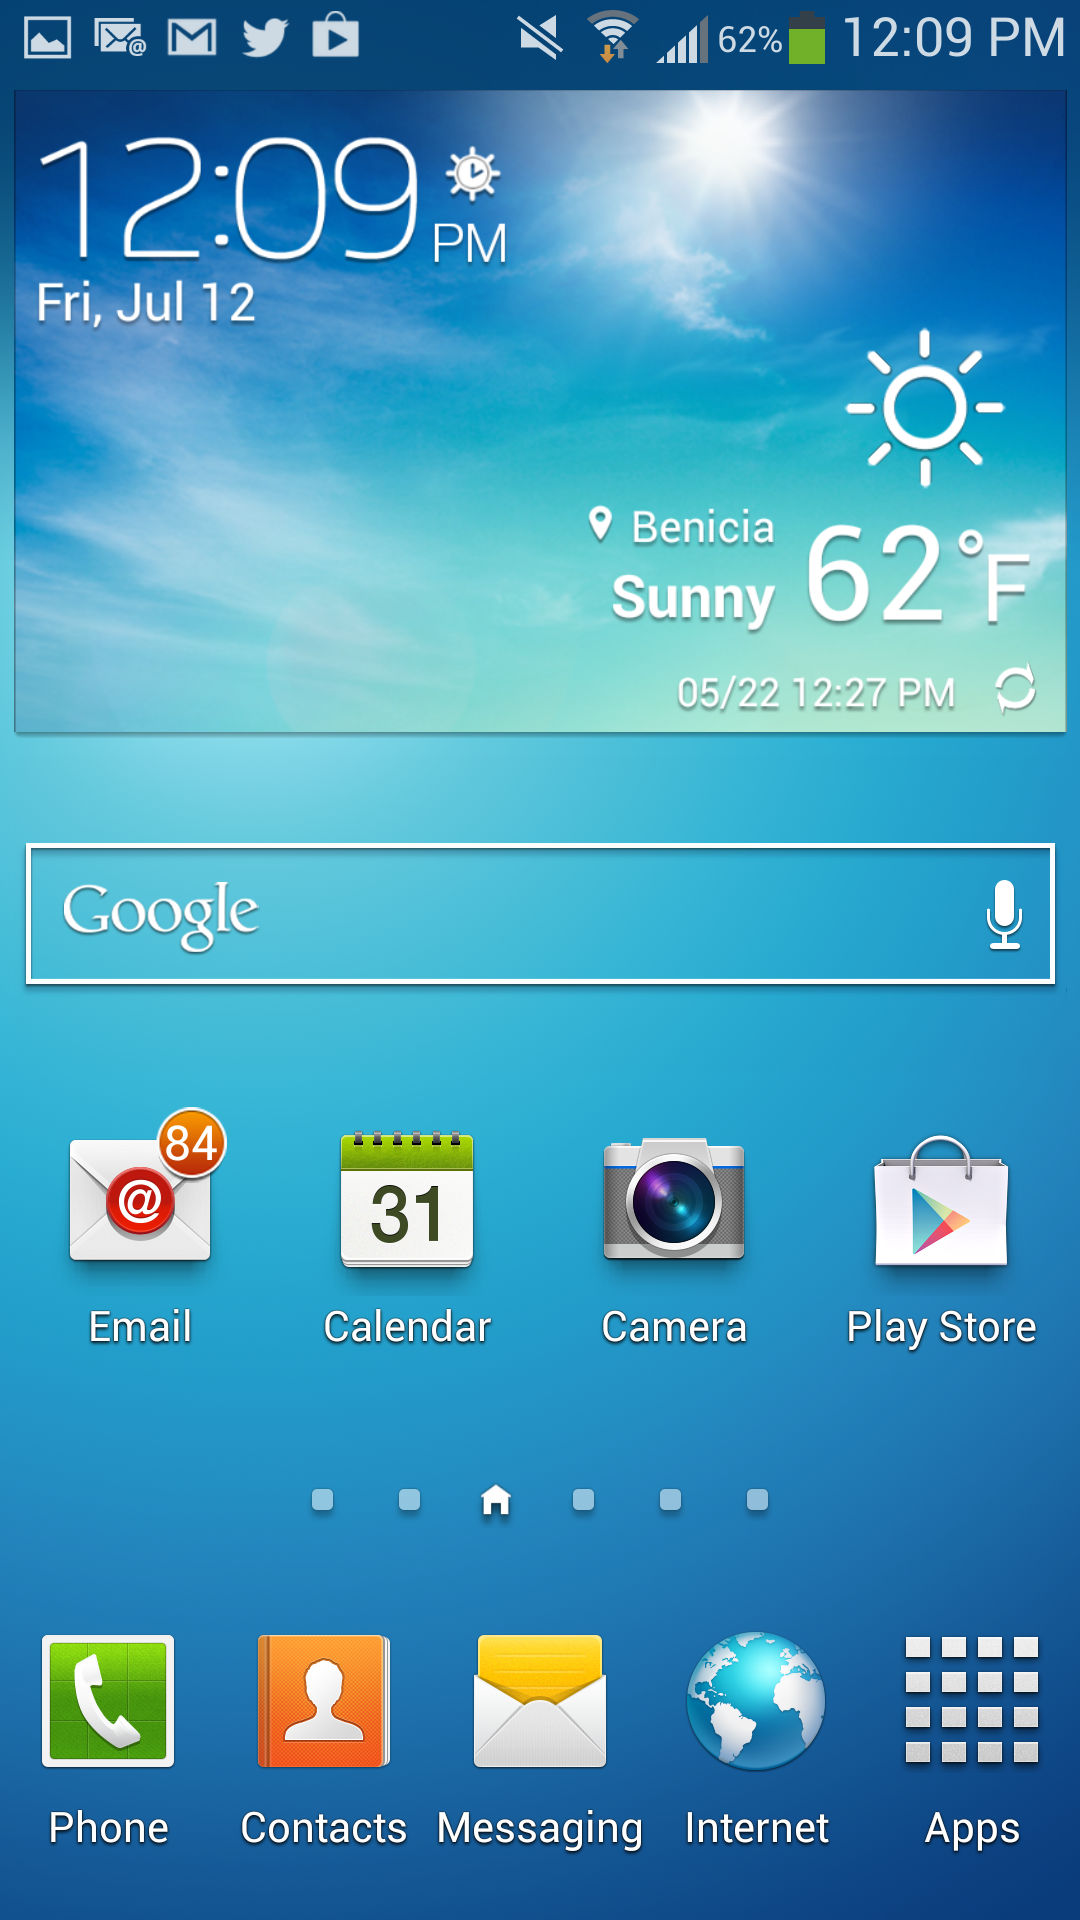 Samsung's TouchWiz Nature UX 2.0 interface overlay.